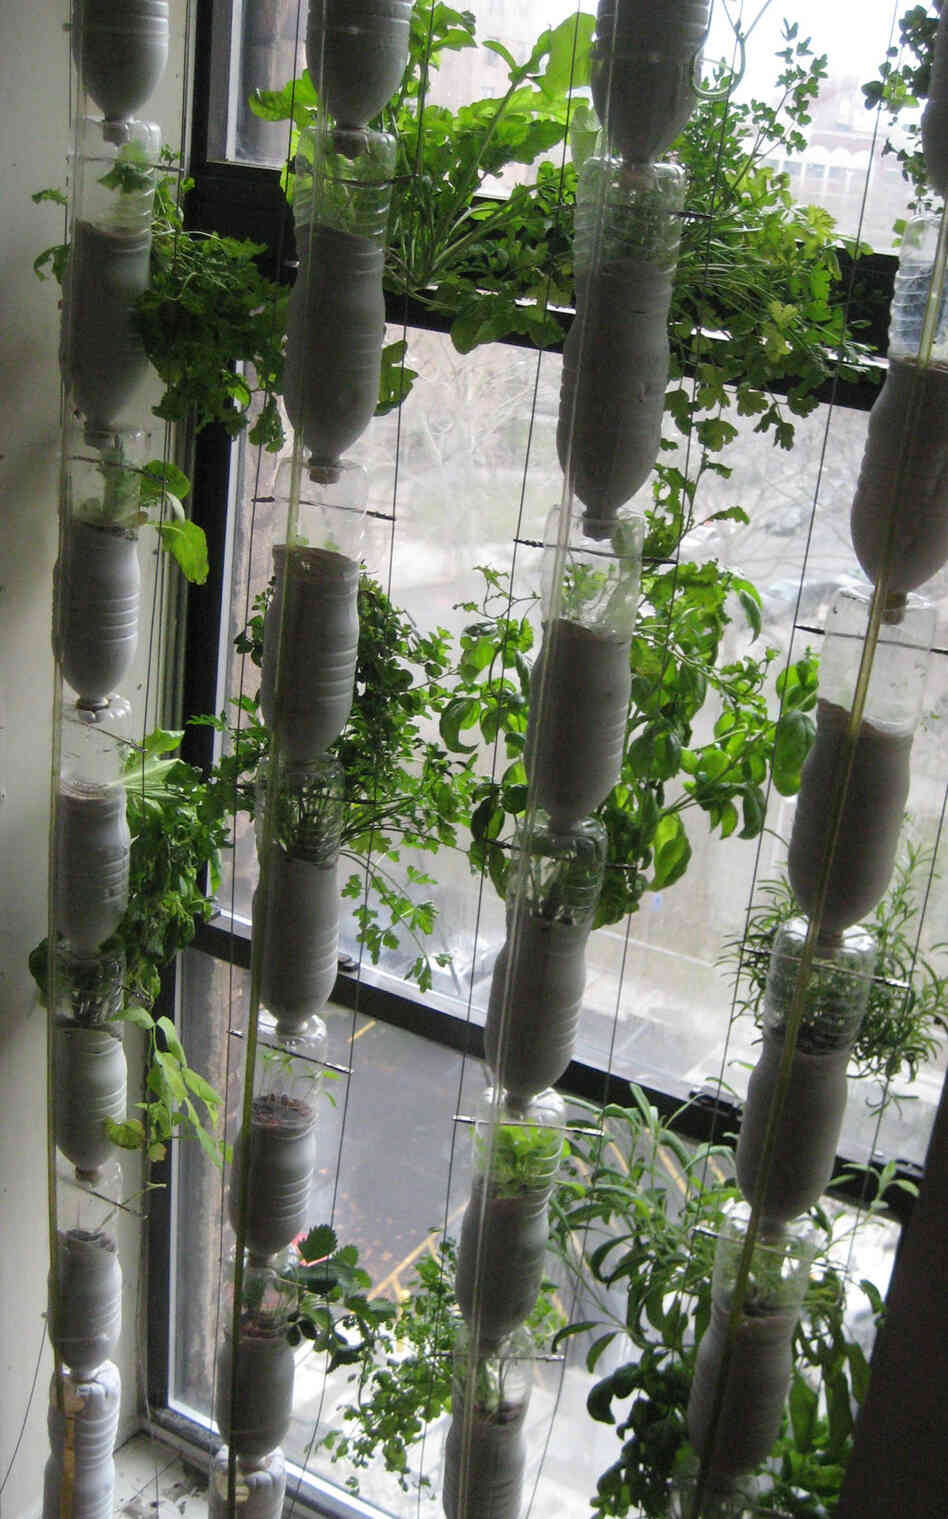 Window farming a do it yourself veggie venture npr for Garden window